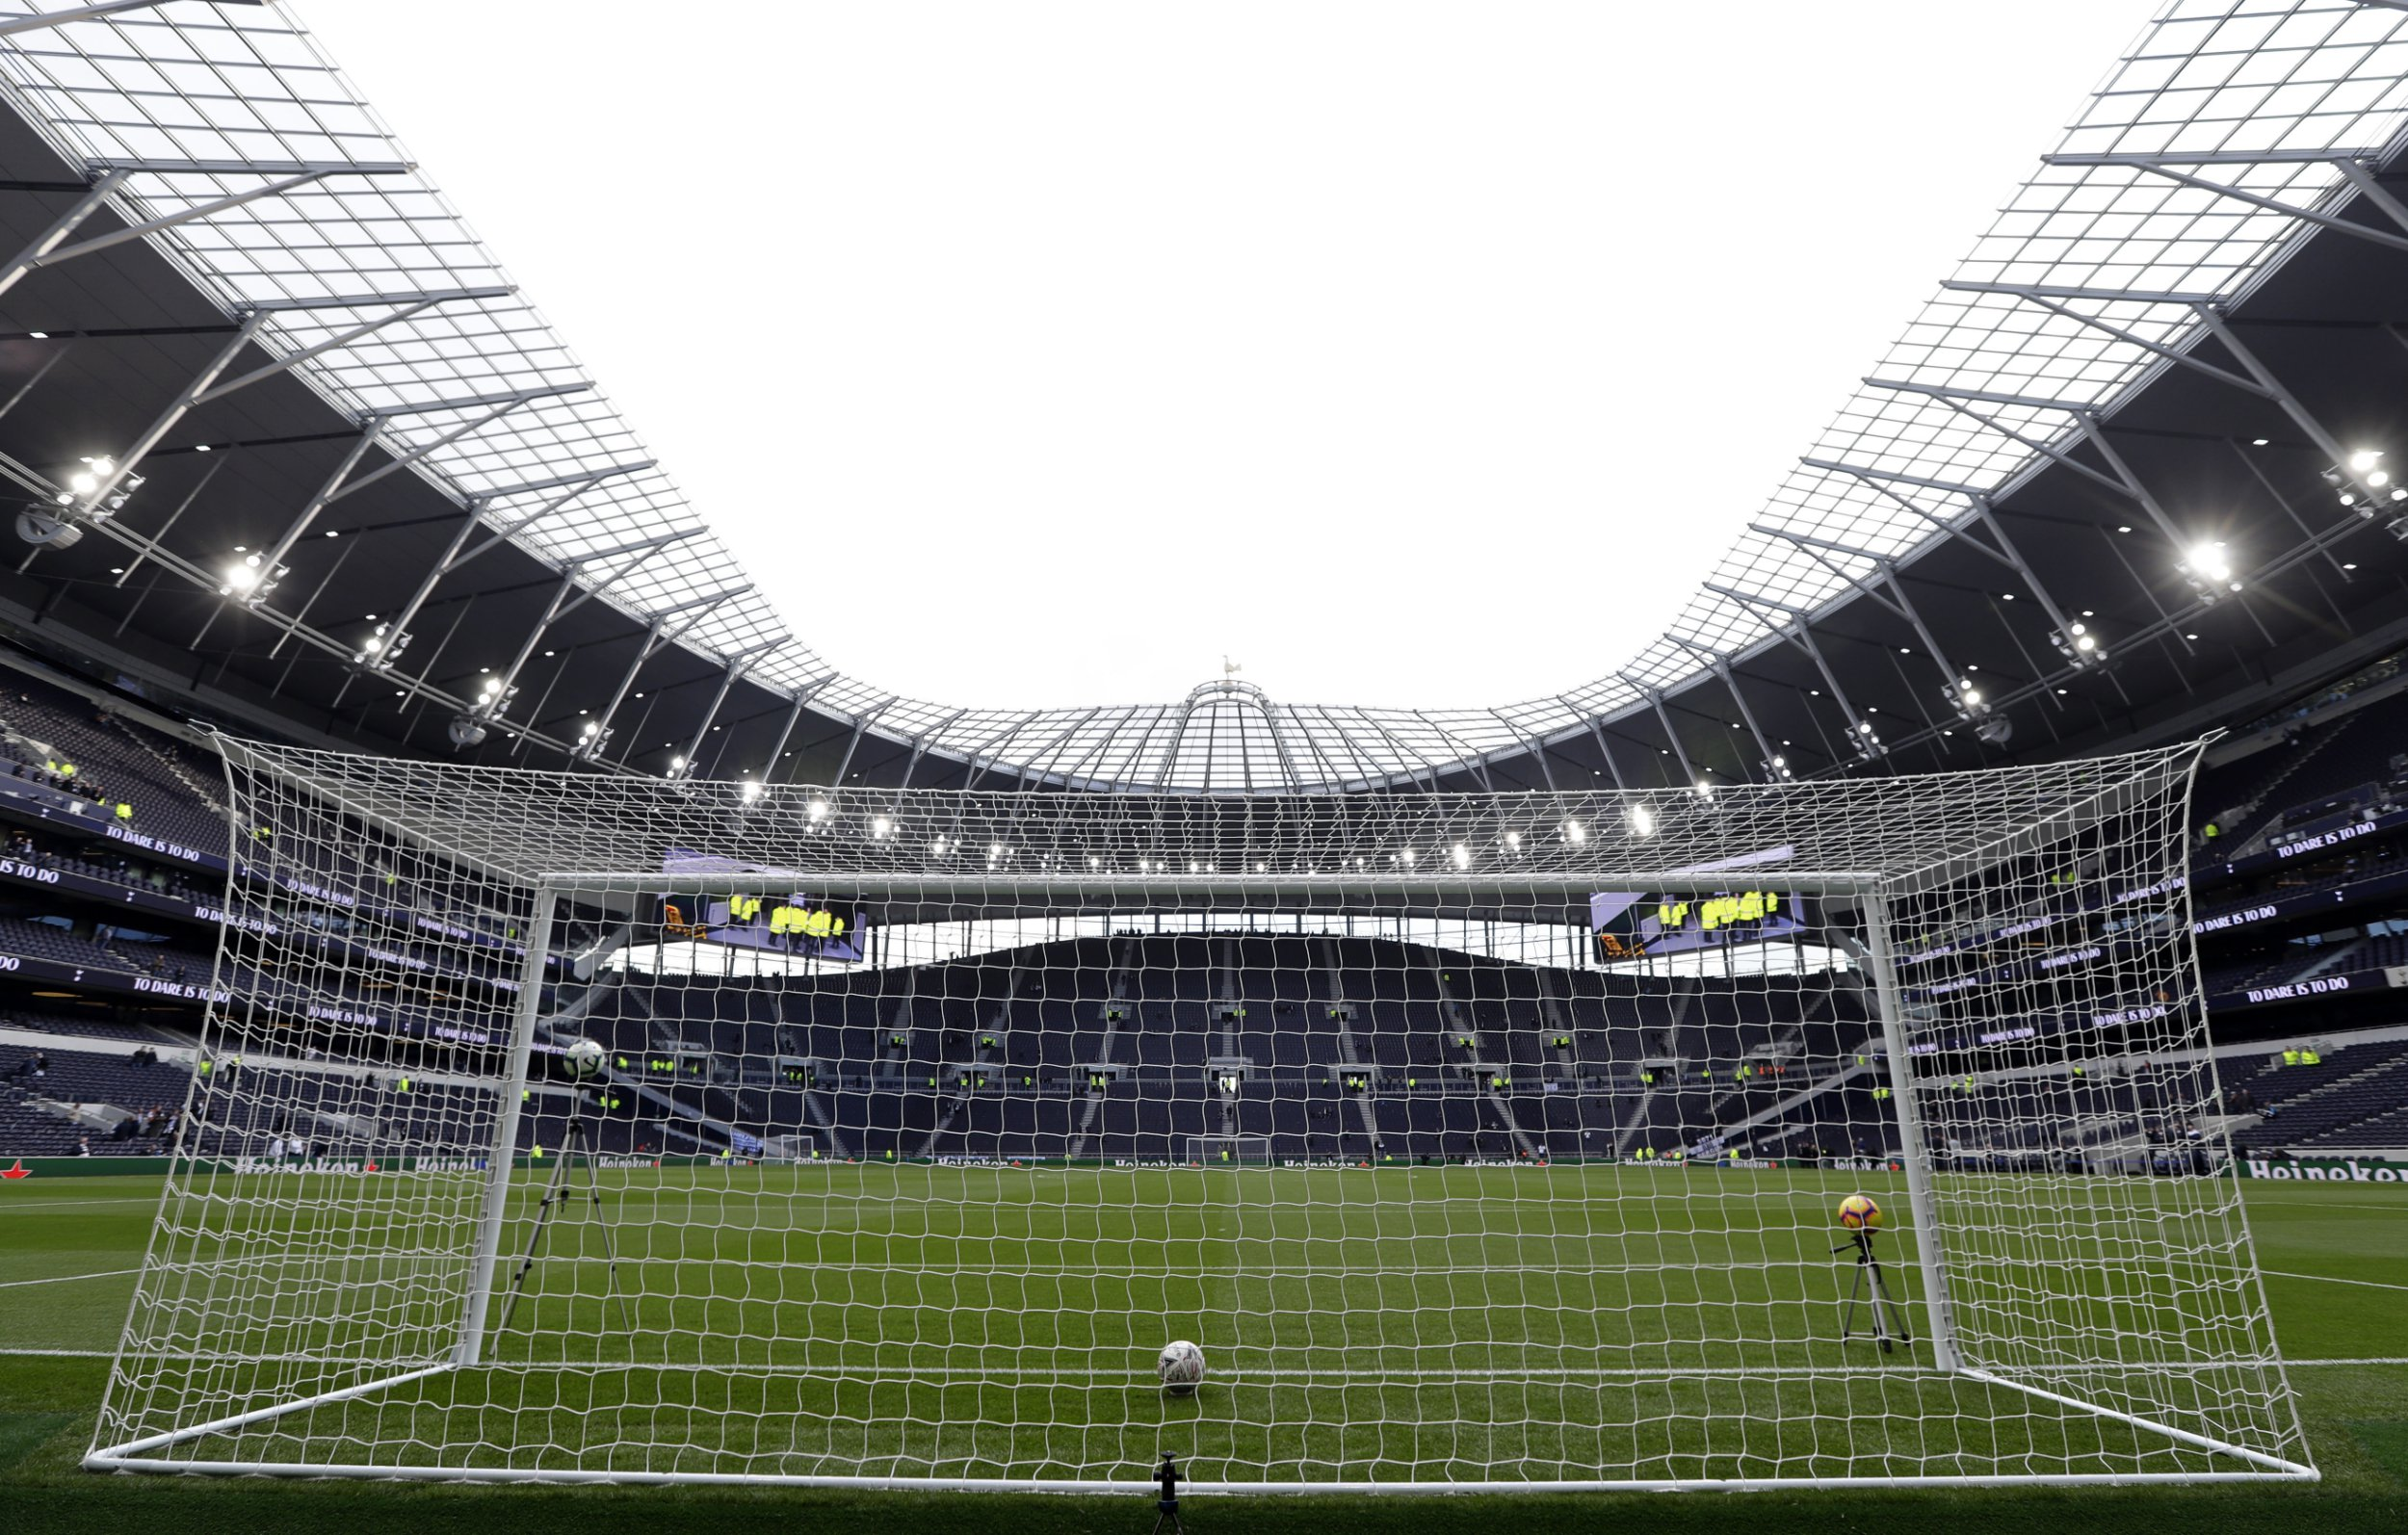 Tottenham's new stadium is breathtaking but now they need to show big club ambition on the pitch